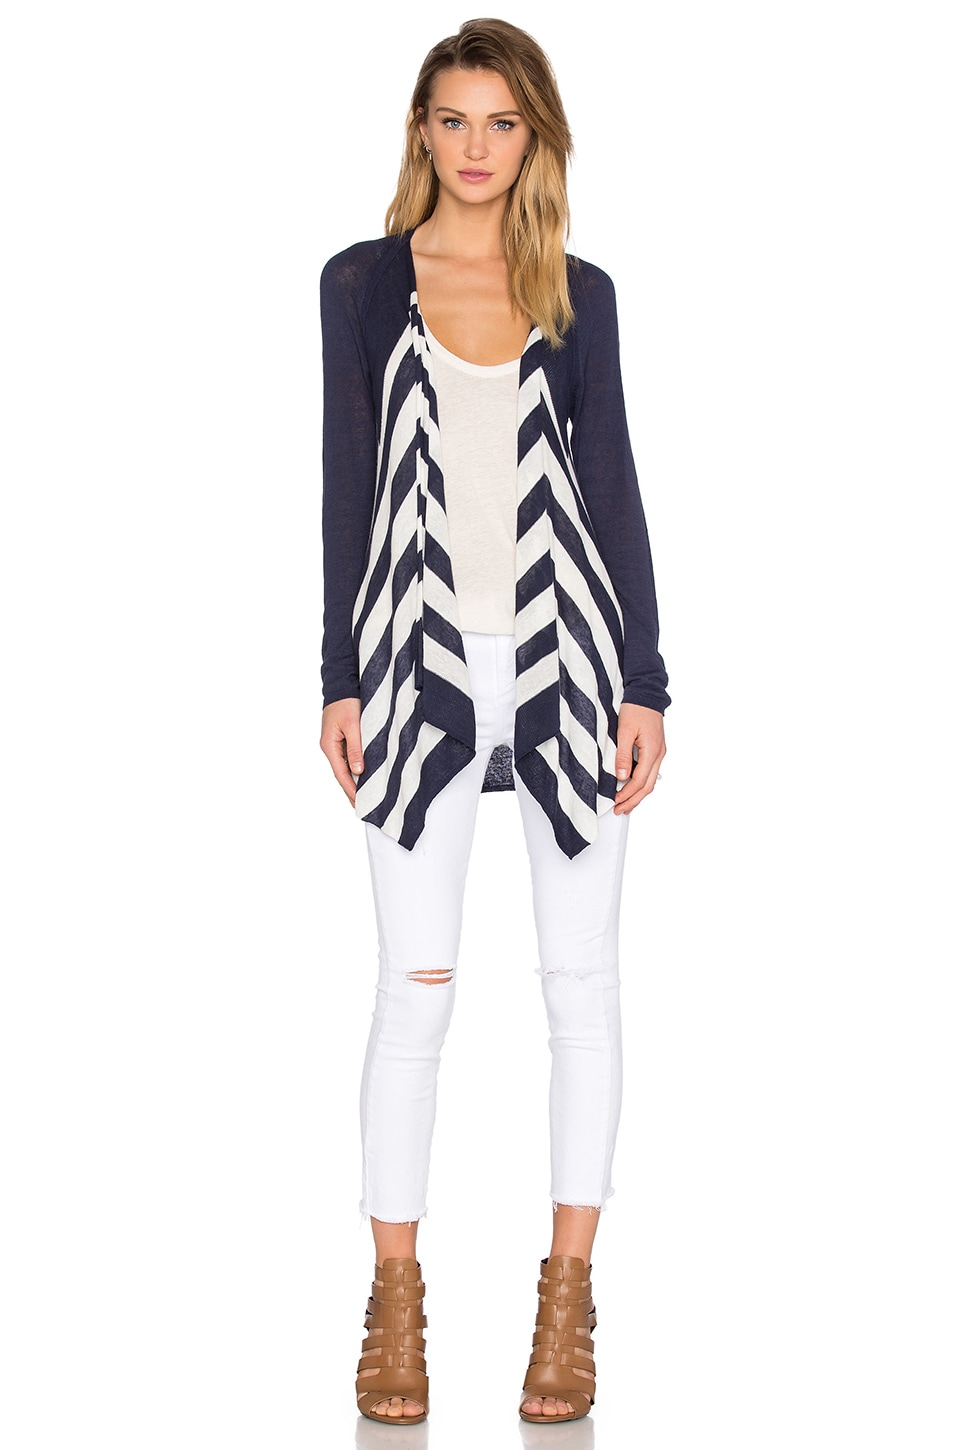 Splendid Parasol Stripe Cardigan in Navy & Natural